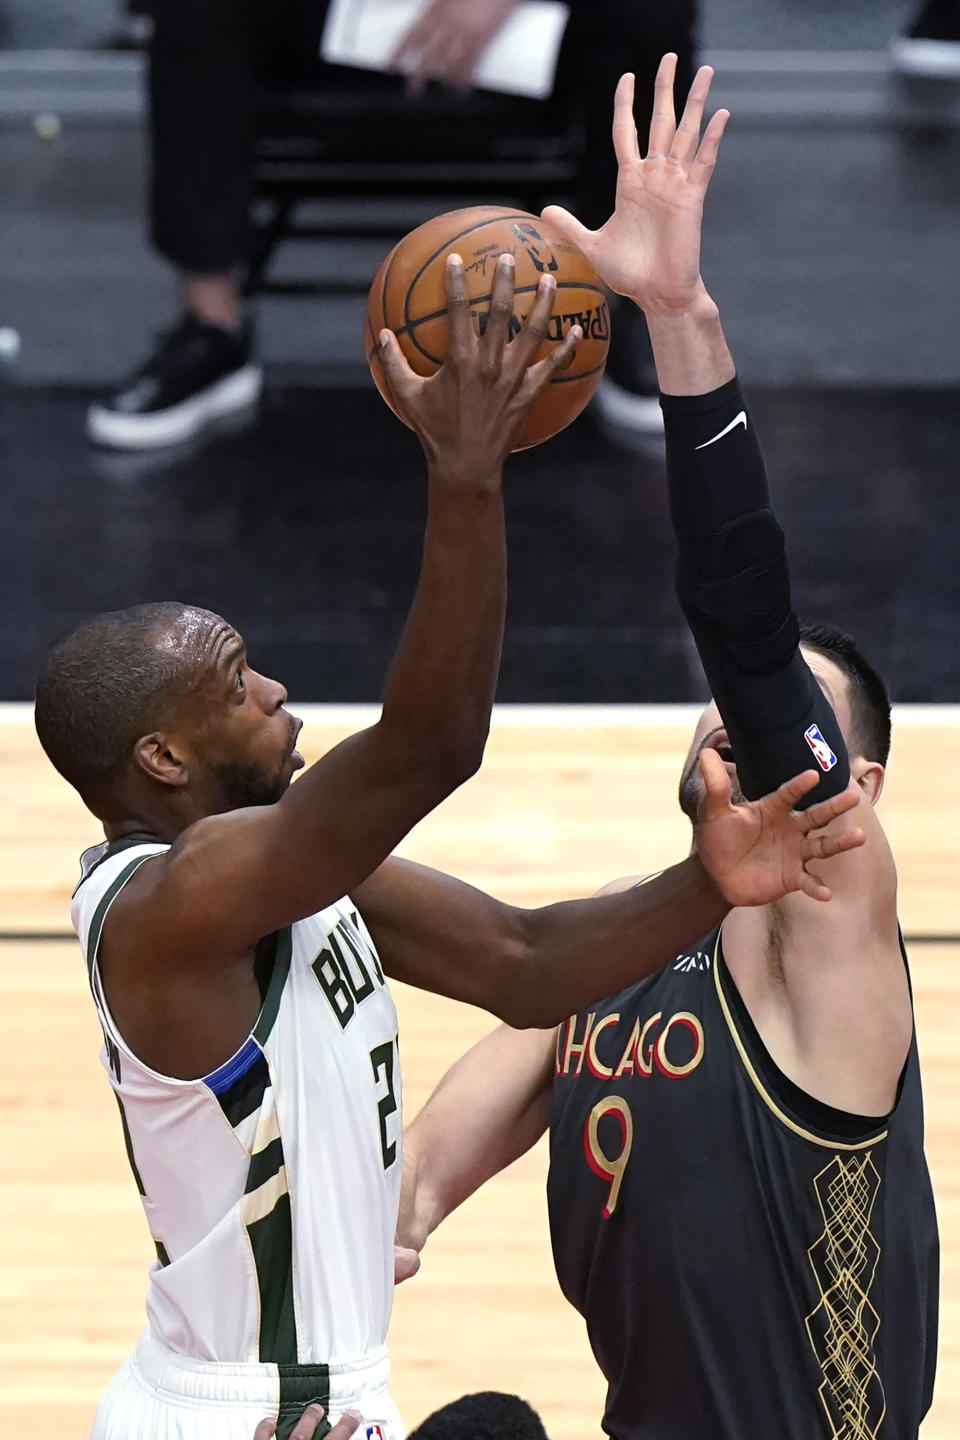 Milwaukee Bucks forward Khris Middleton, left, drives to the basket against Chicago Bulls center Nikola Vucevic during the first half of an NBA basketball game in Chicago, Friday, April 30, 2021. (AP Photo/Nam Y. Huh)